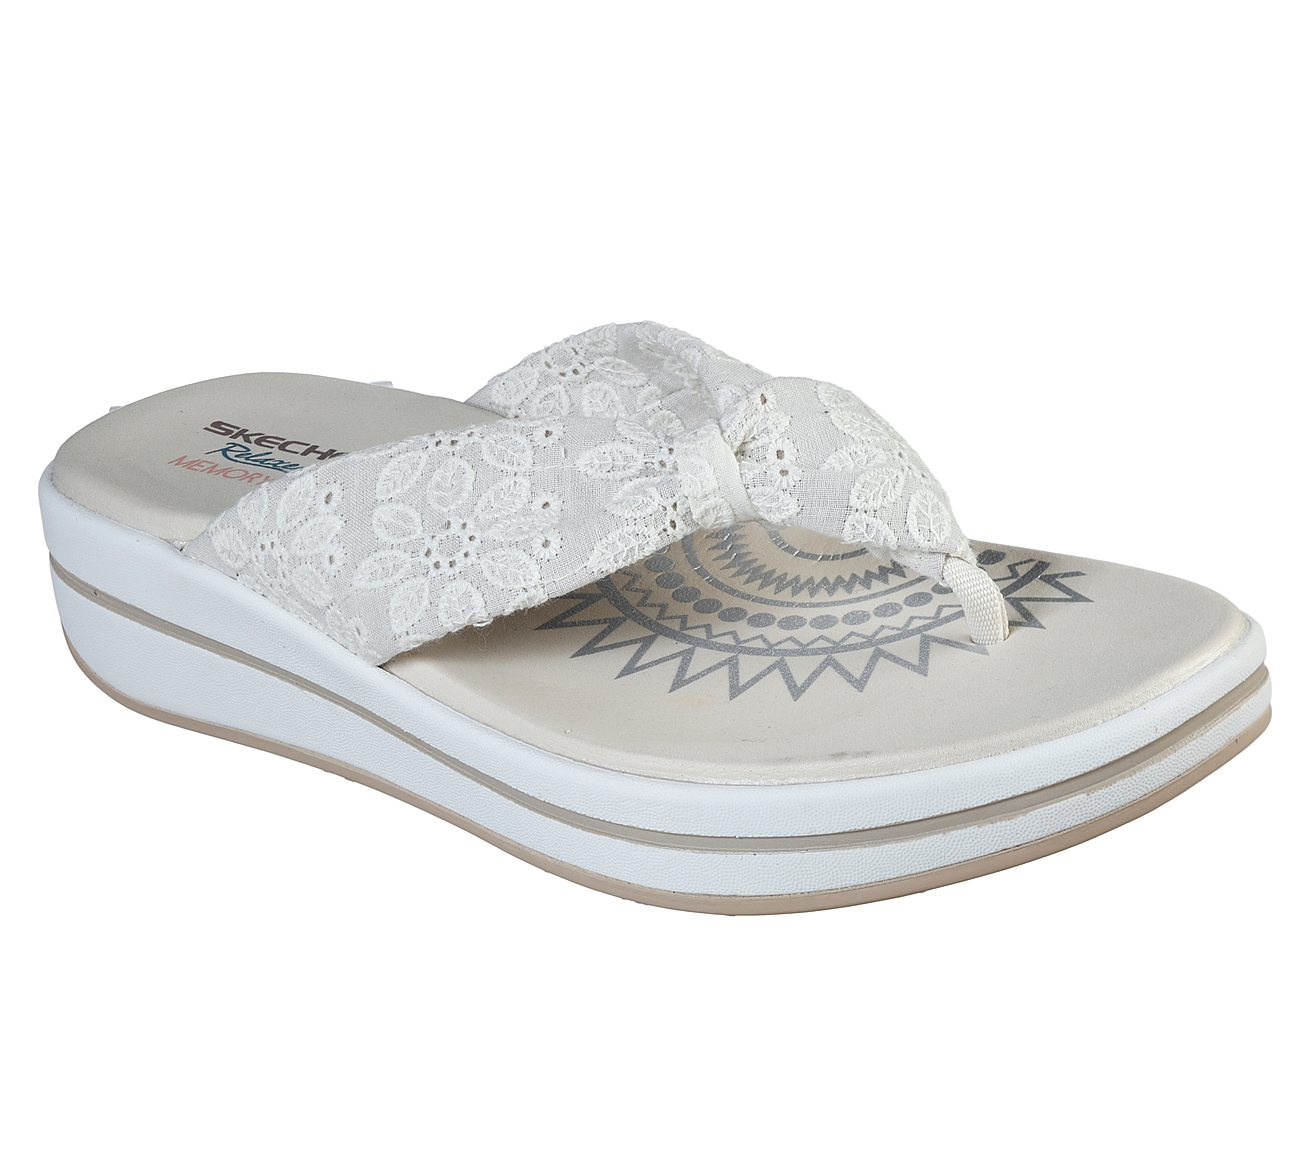 Buy SKECHERS Relaxed Fit: Upgrades